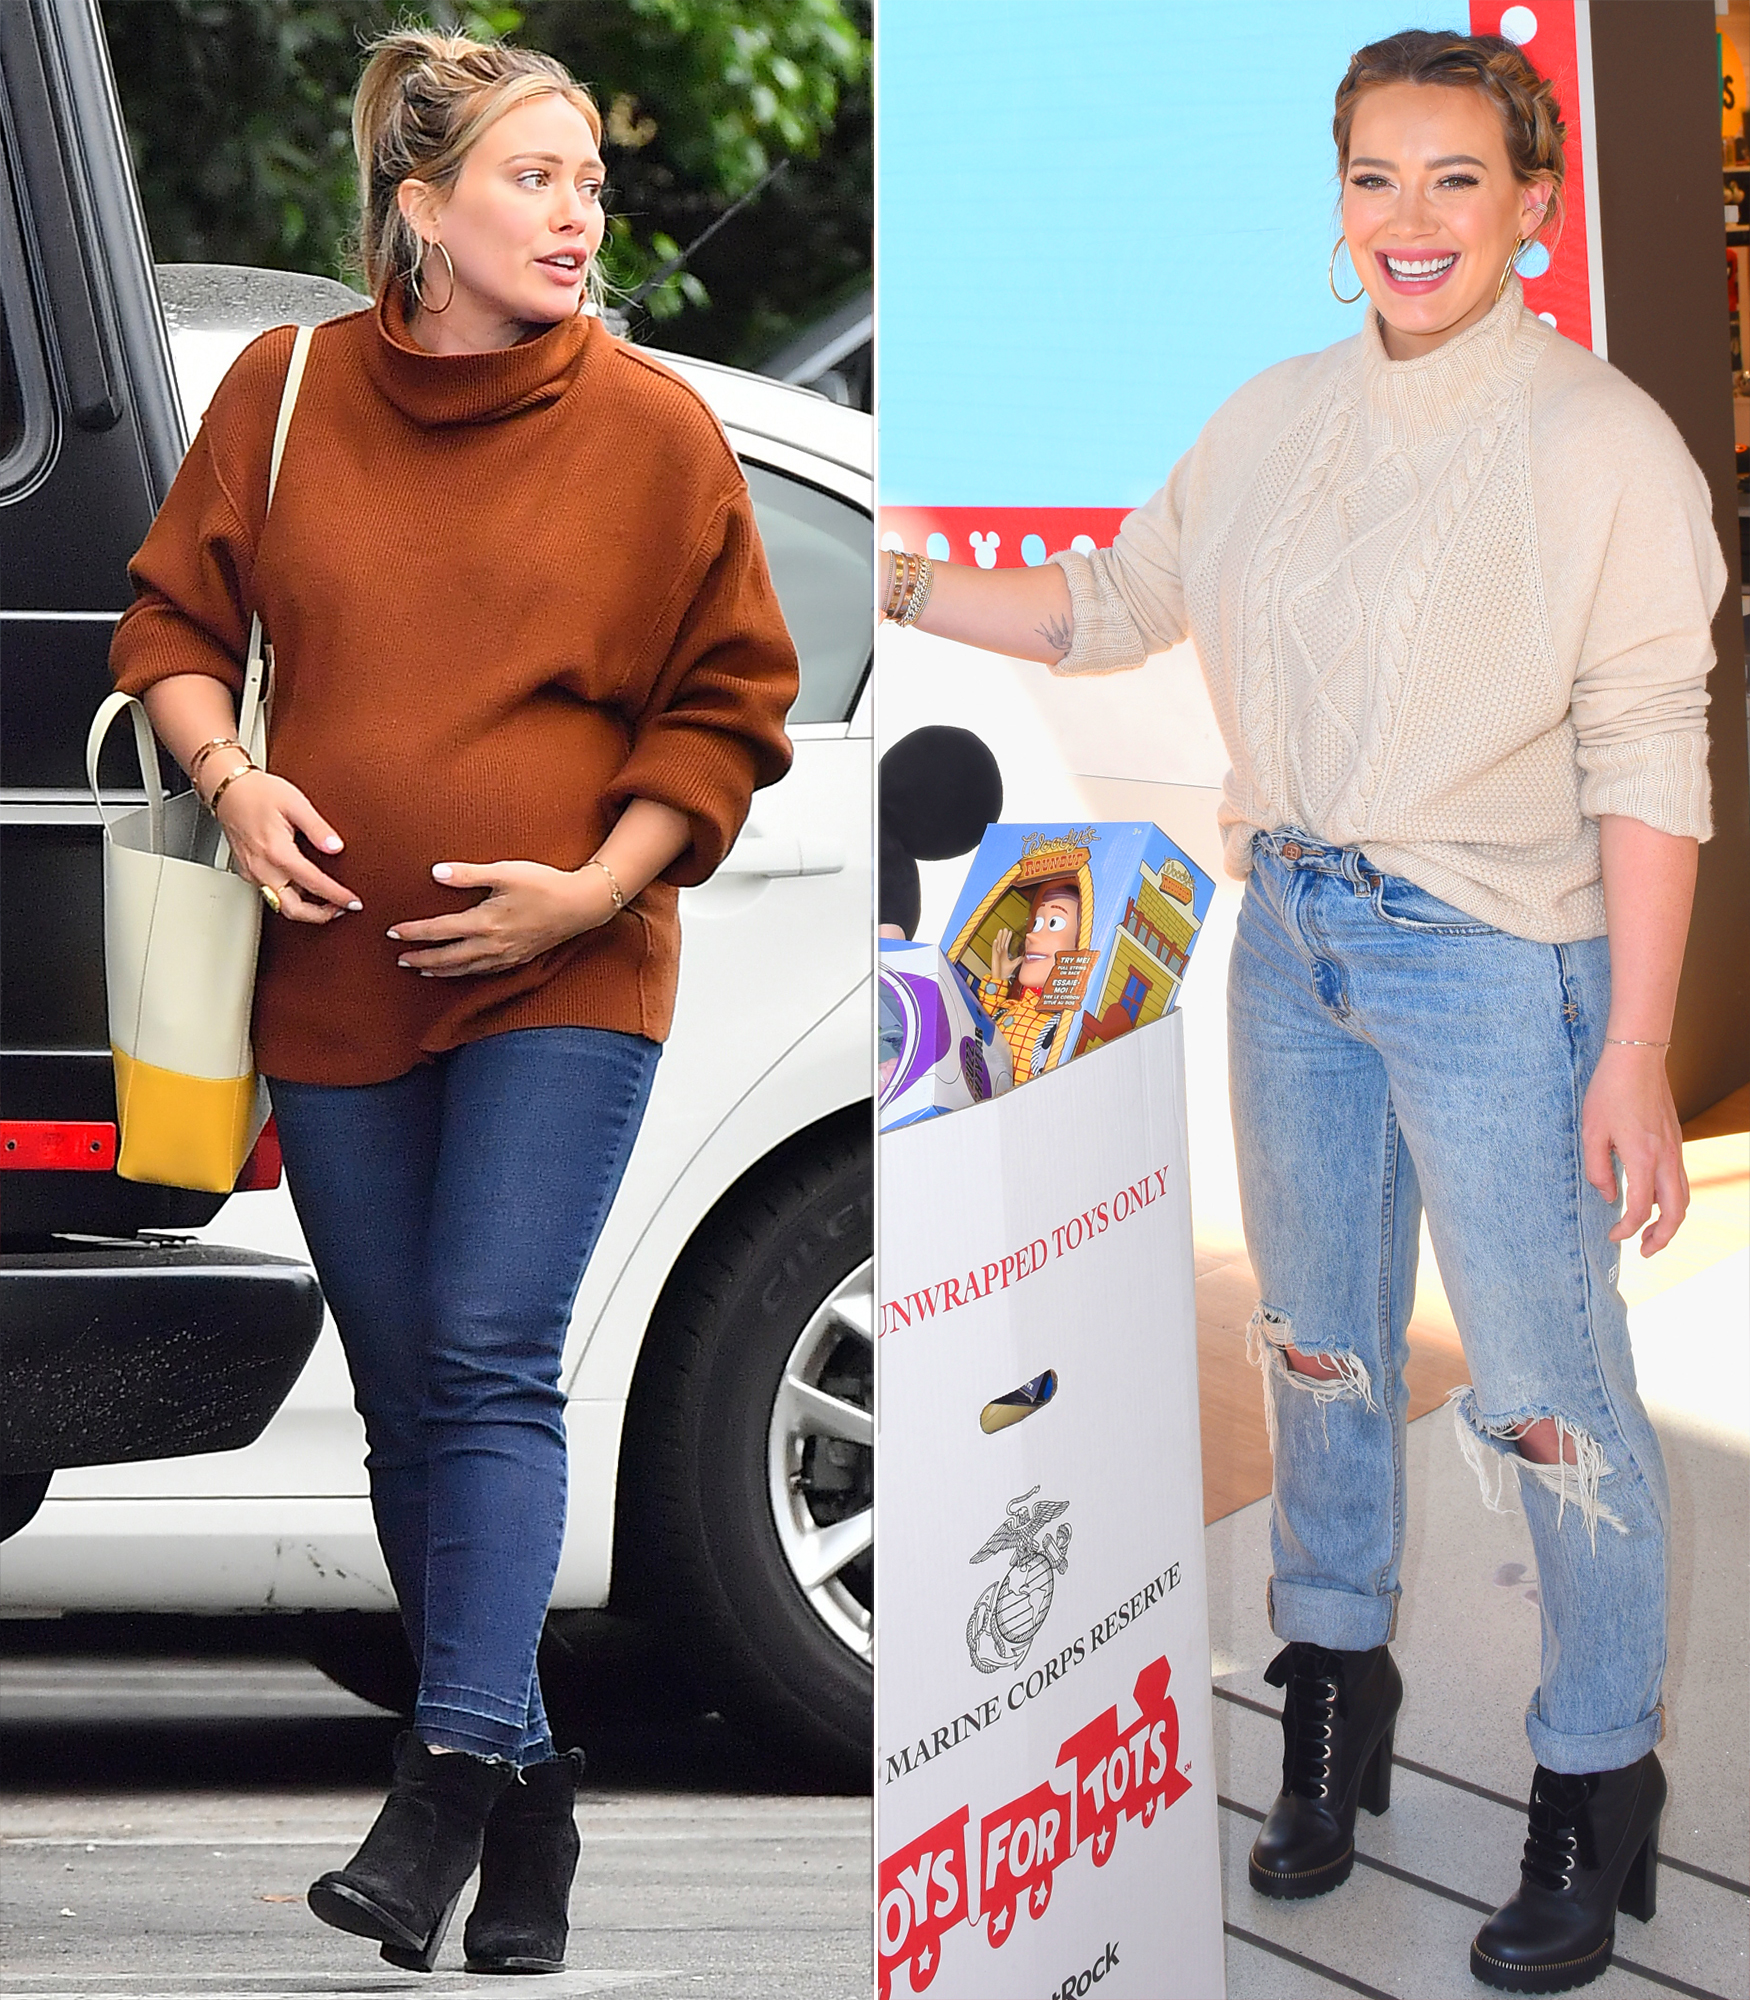 celebrity baby weight loss 2018 - On October 25, the actress, who also has 6-year-old son Luca, welcomed her first baby with boyfriend Matthew Koma, daughter Banks Violet. The 31-year-old took spinning classes at Cycle House throughout her pregnancy — and her efforts showed in her svelte frame on November 26 (right) just one month postpartum.